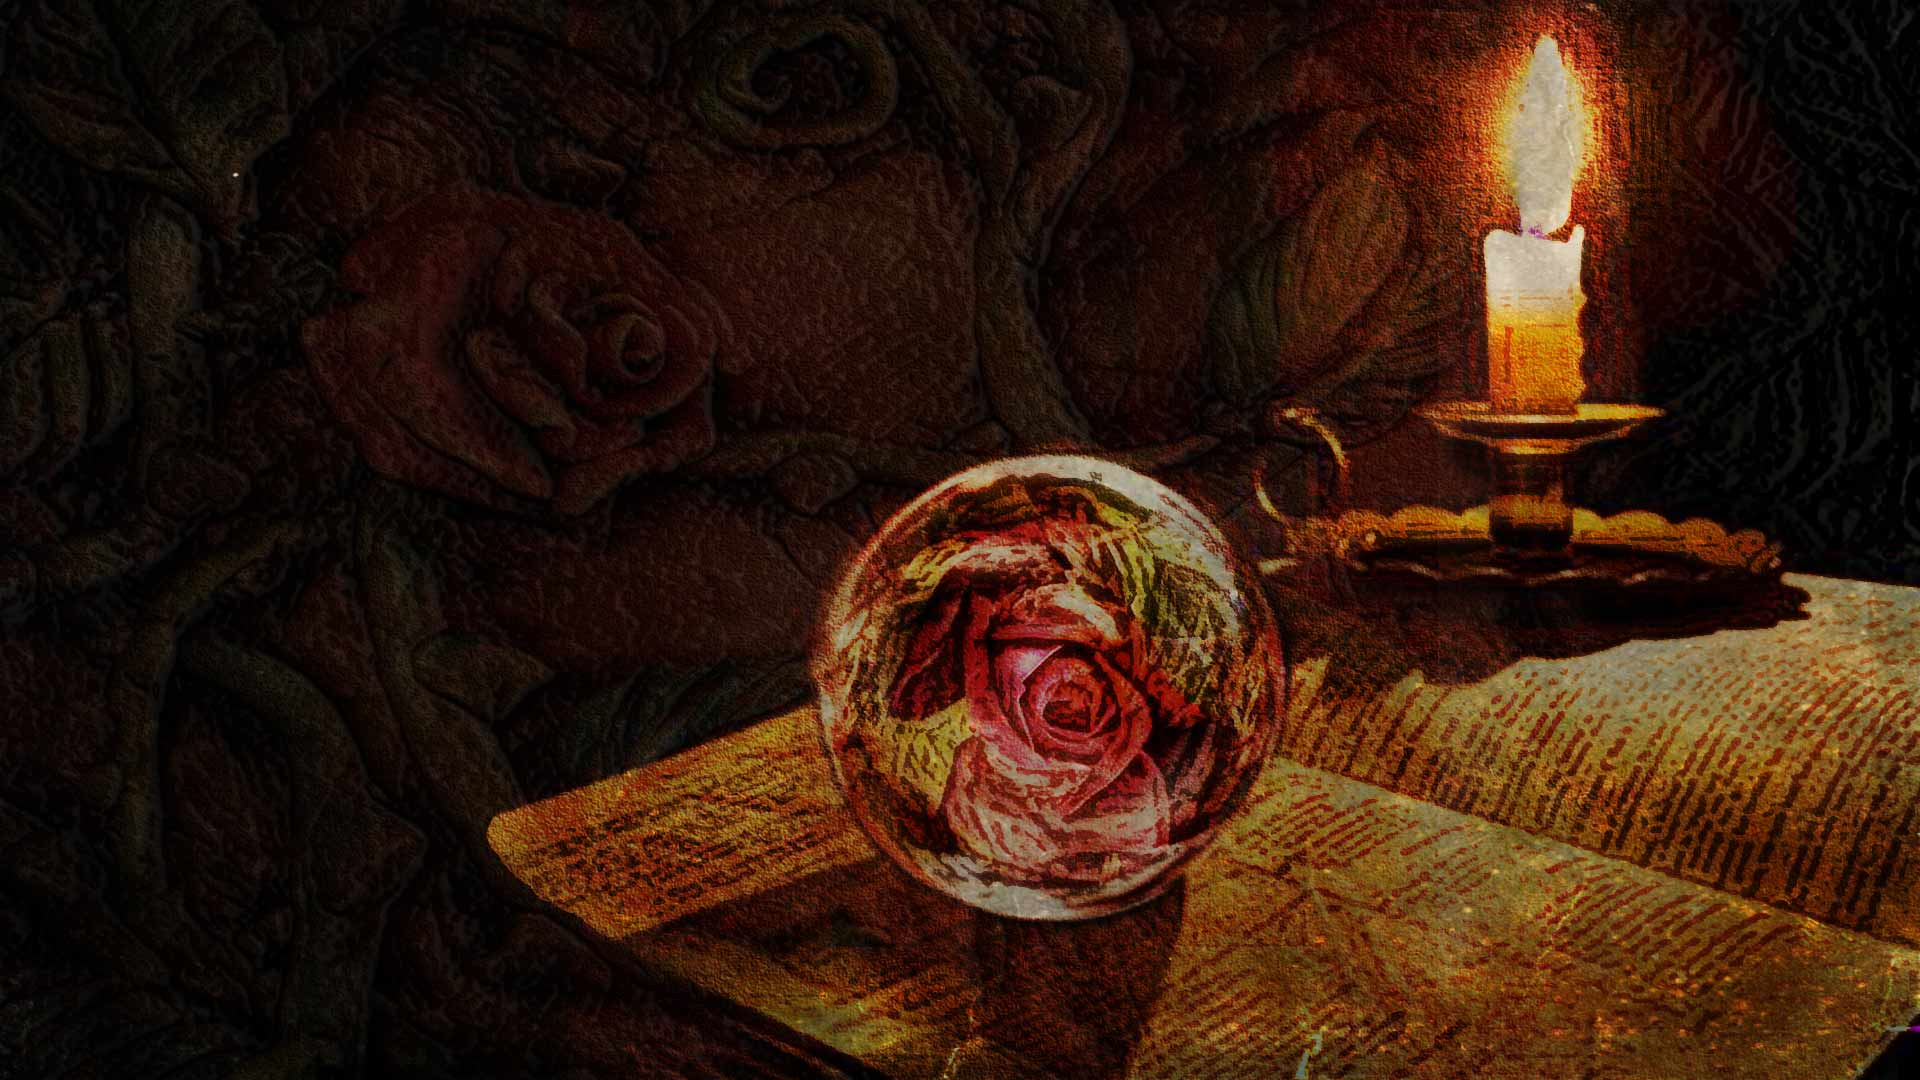 A rose inside a glass gazing ball